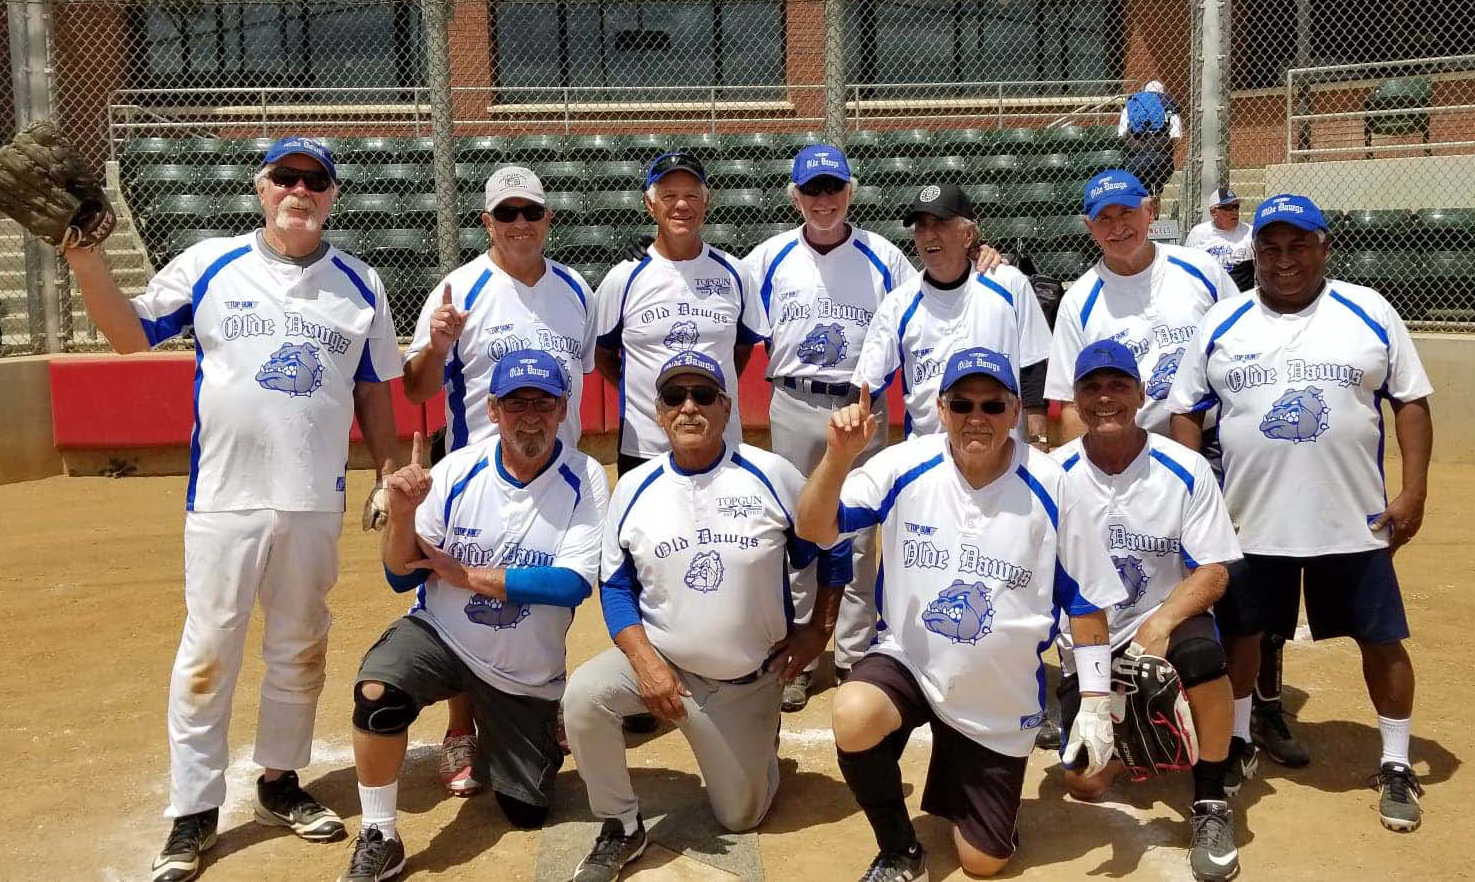 Olde Dawgs - Champions of Reno Tuneup Tournament May 2019